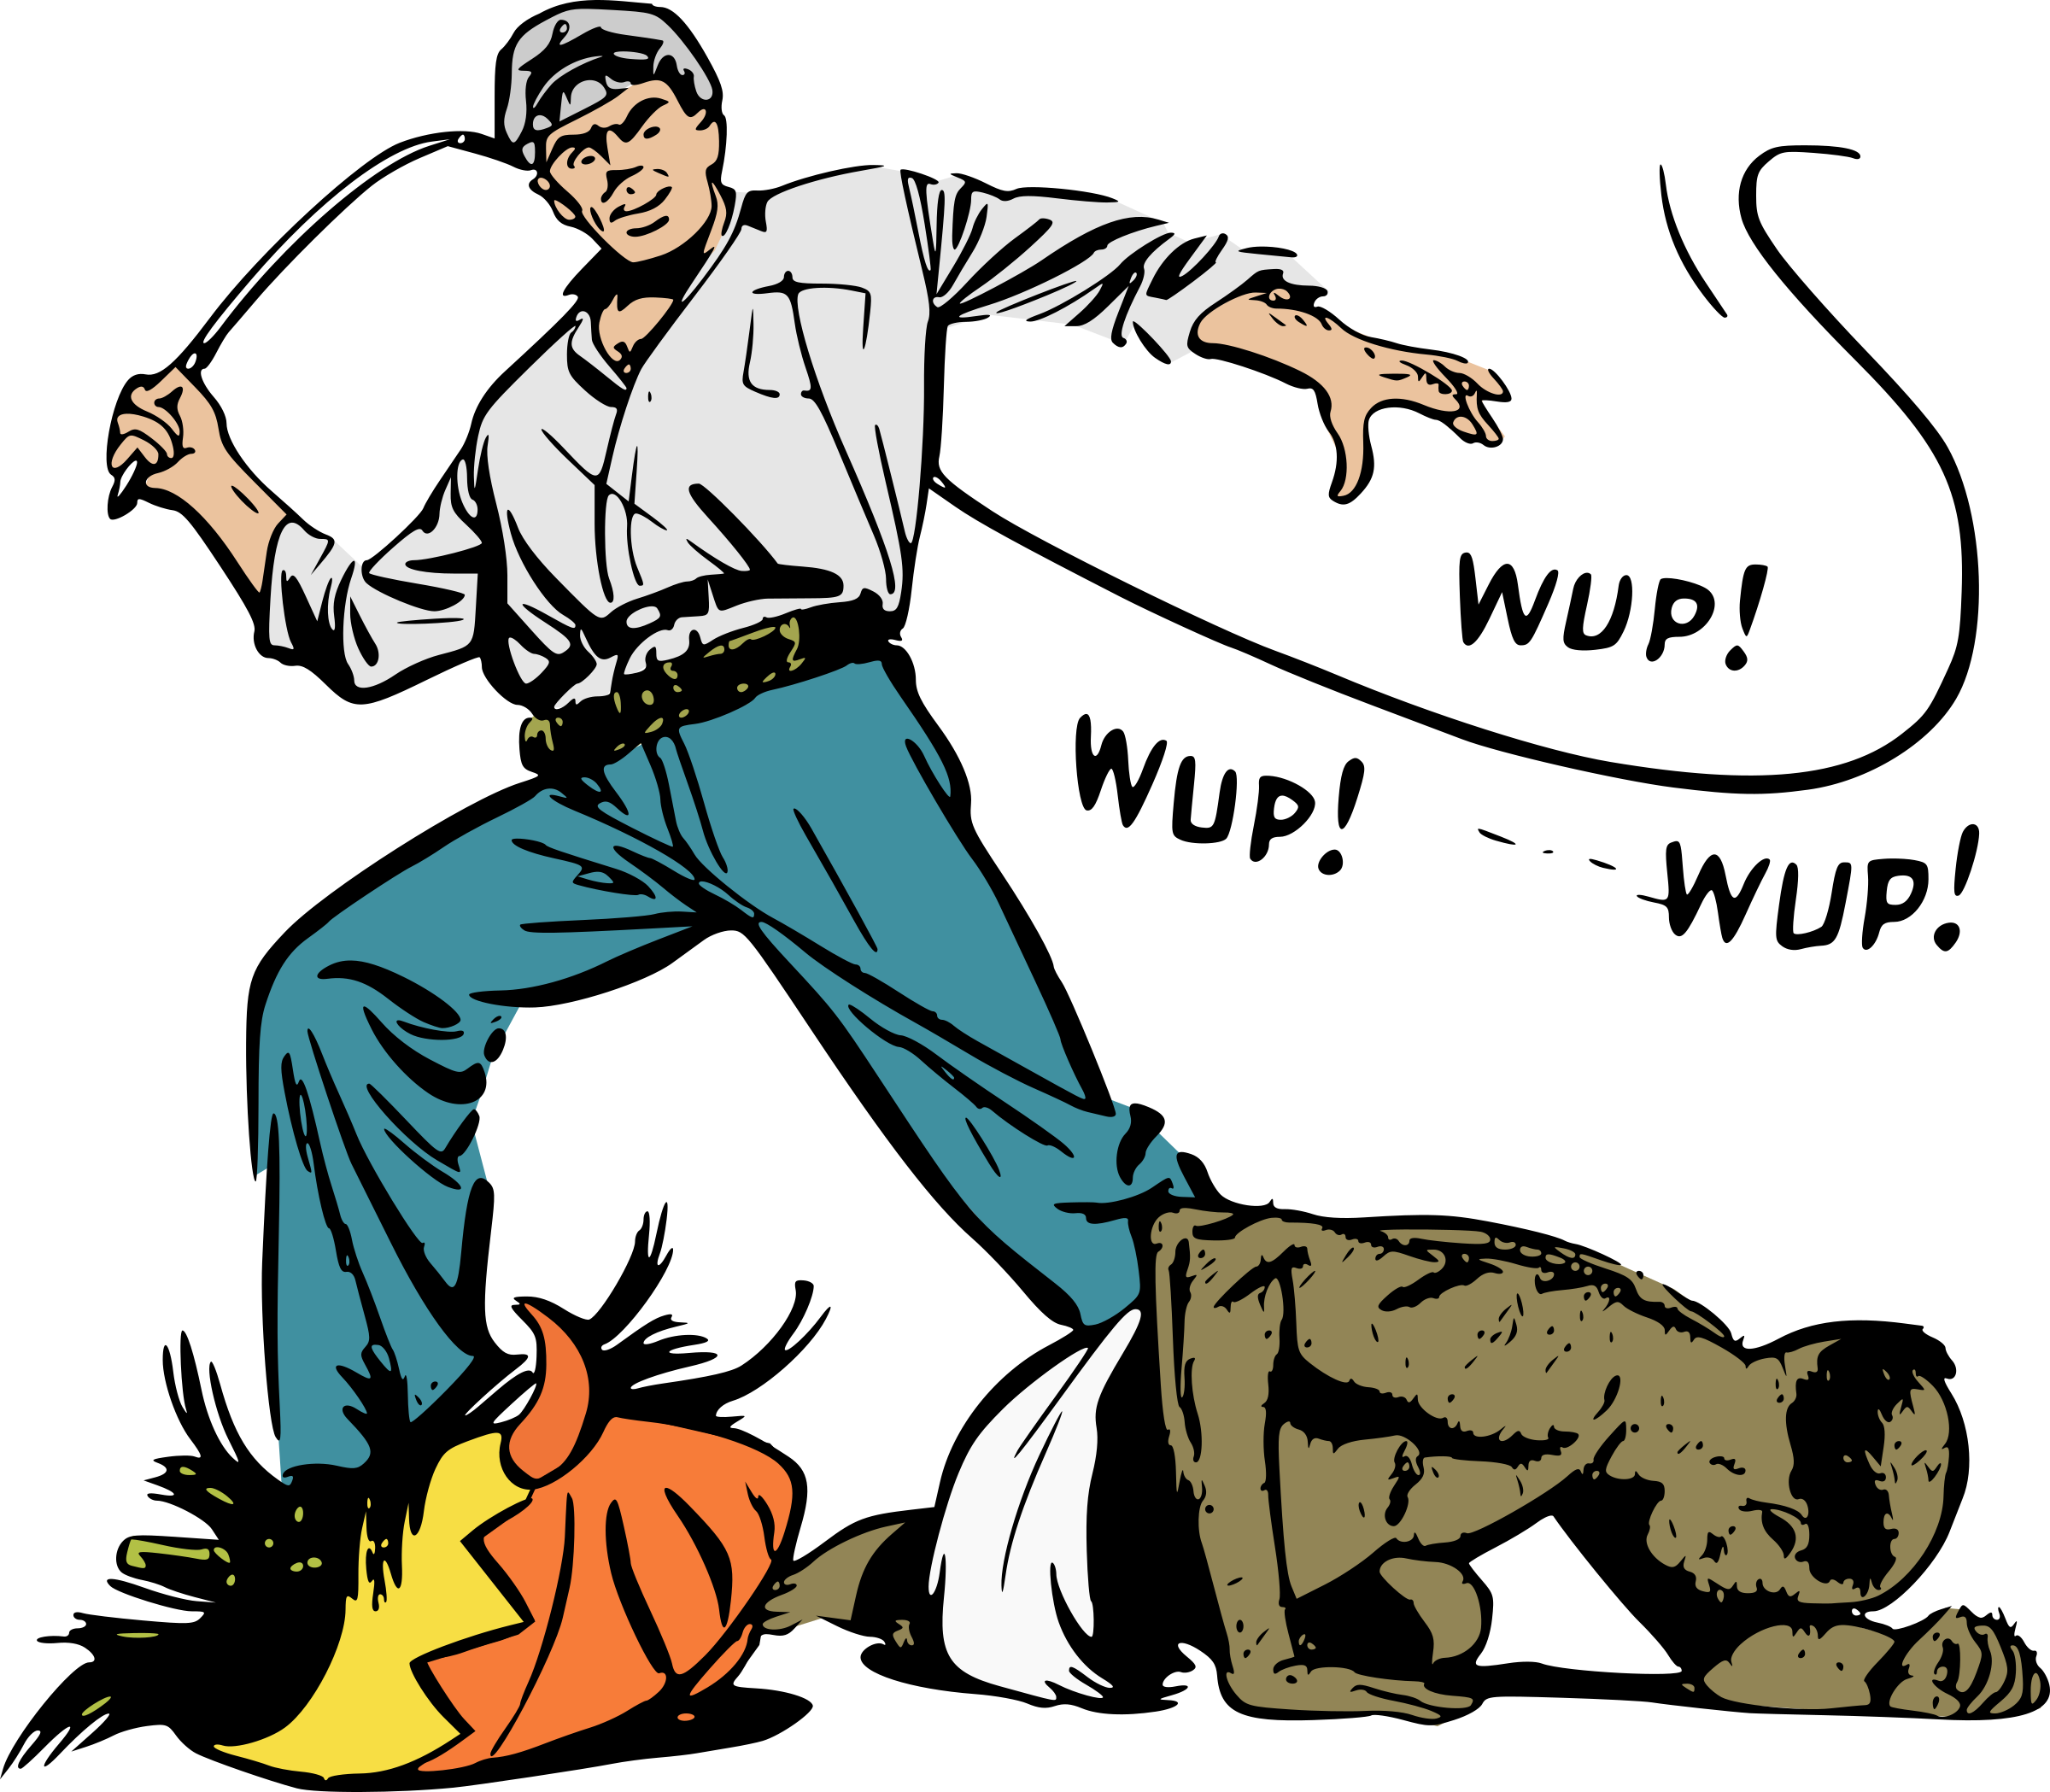 vector royalty free Ivory trader whipping old. Whip clipart man